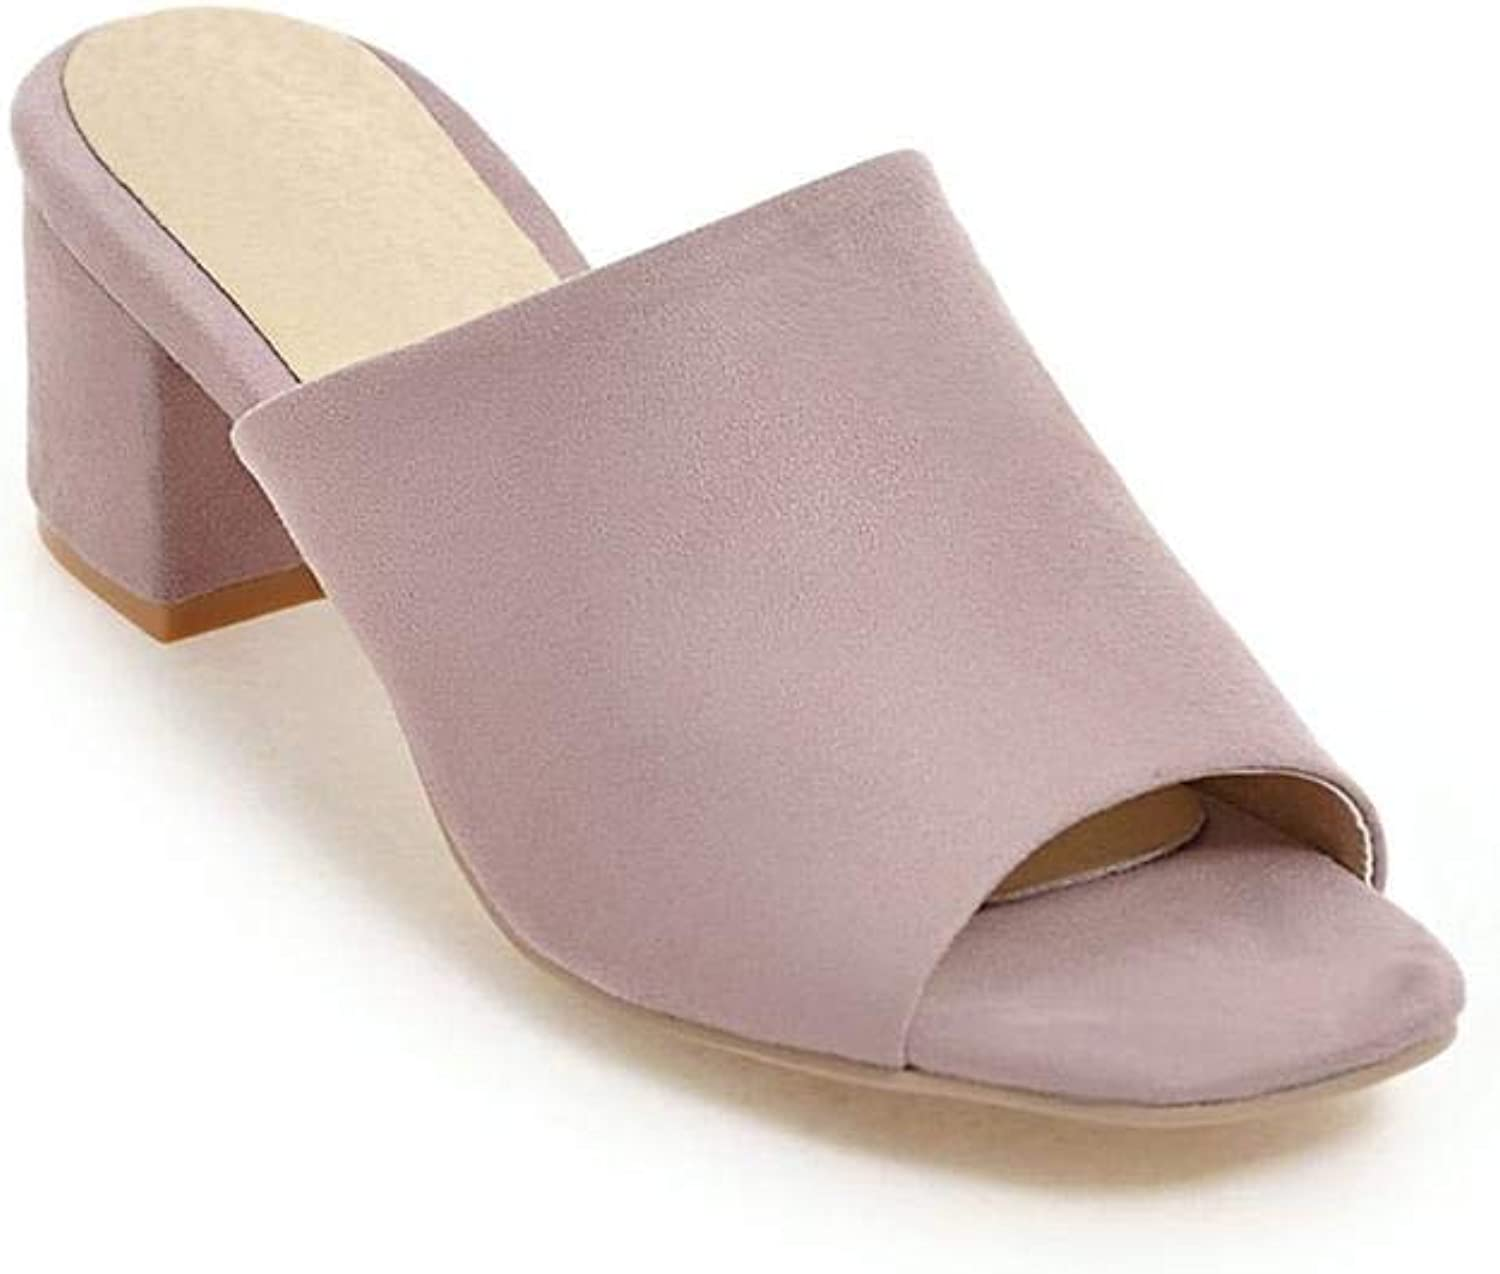 Fan-Shu Summer Solid color Women Slippers Square high Heels Casual